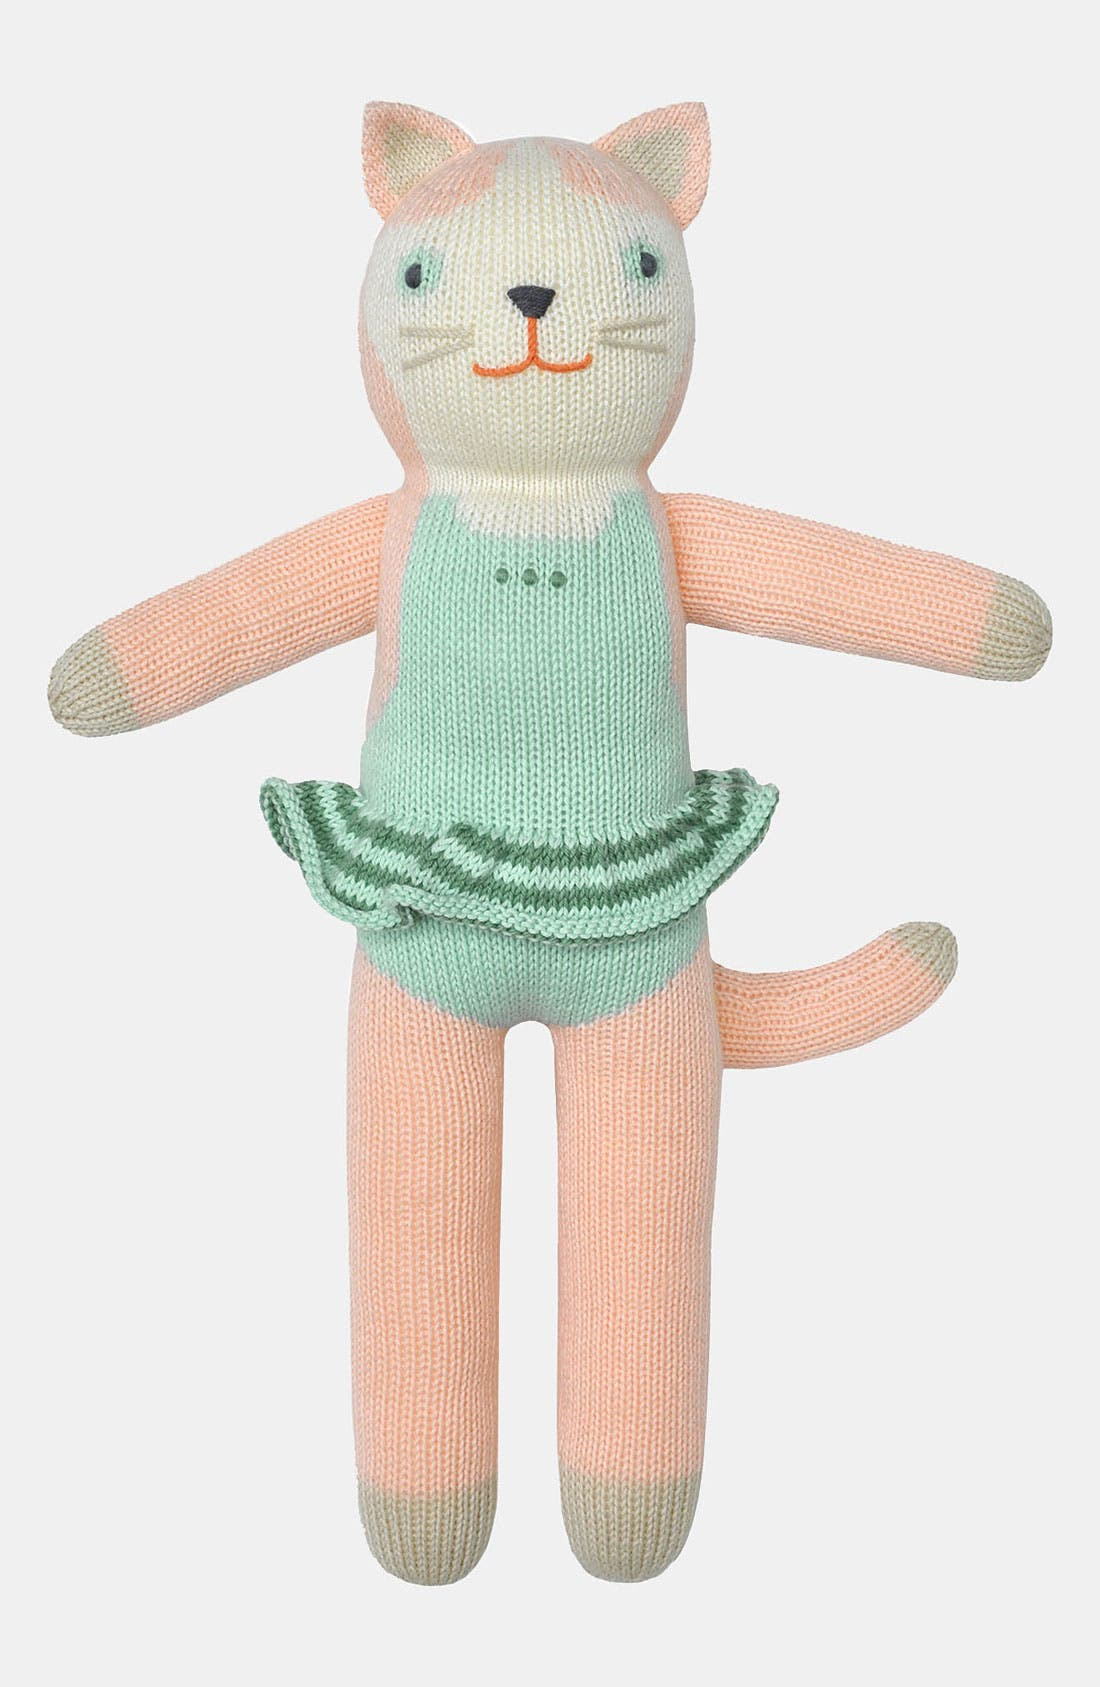 Main Image - Blabla 'Splash the Cat' Knit Doll